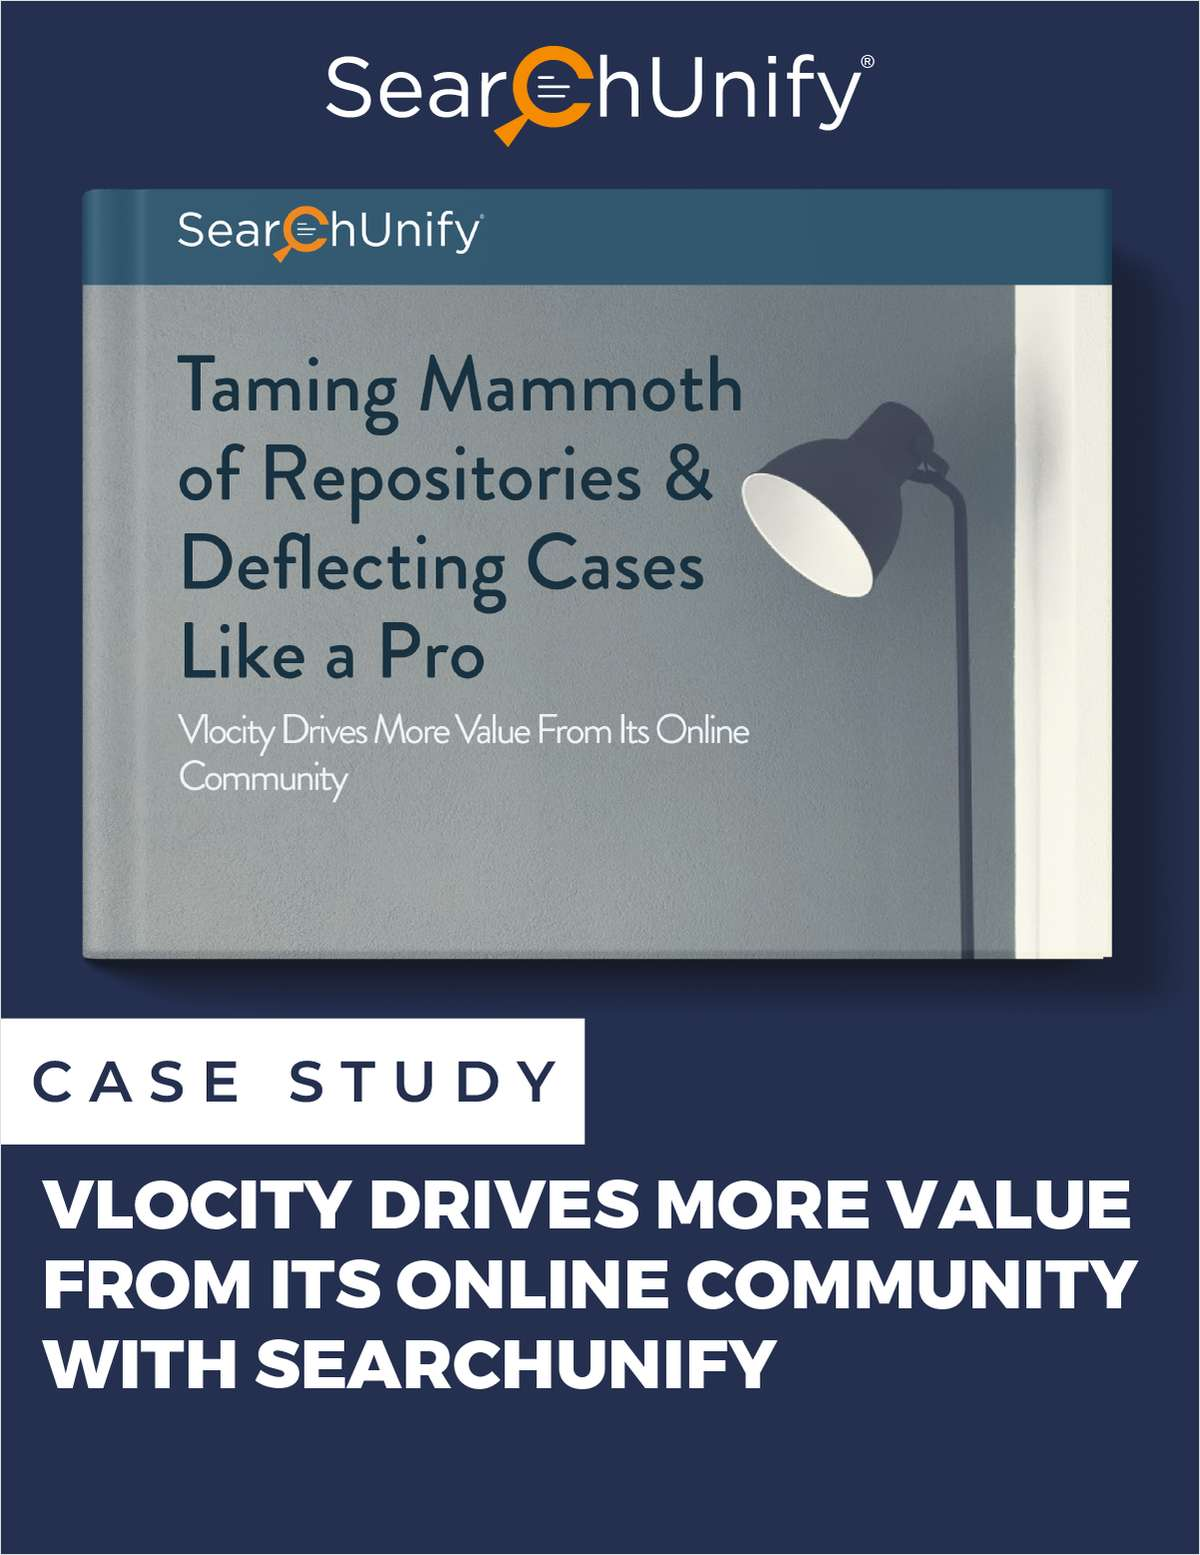 Vlocity Drives More Value From Its Online Community